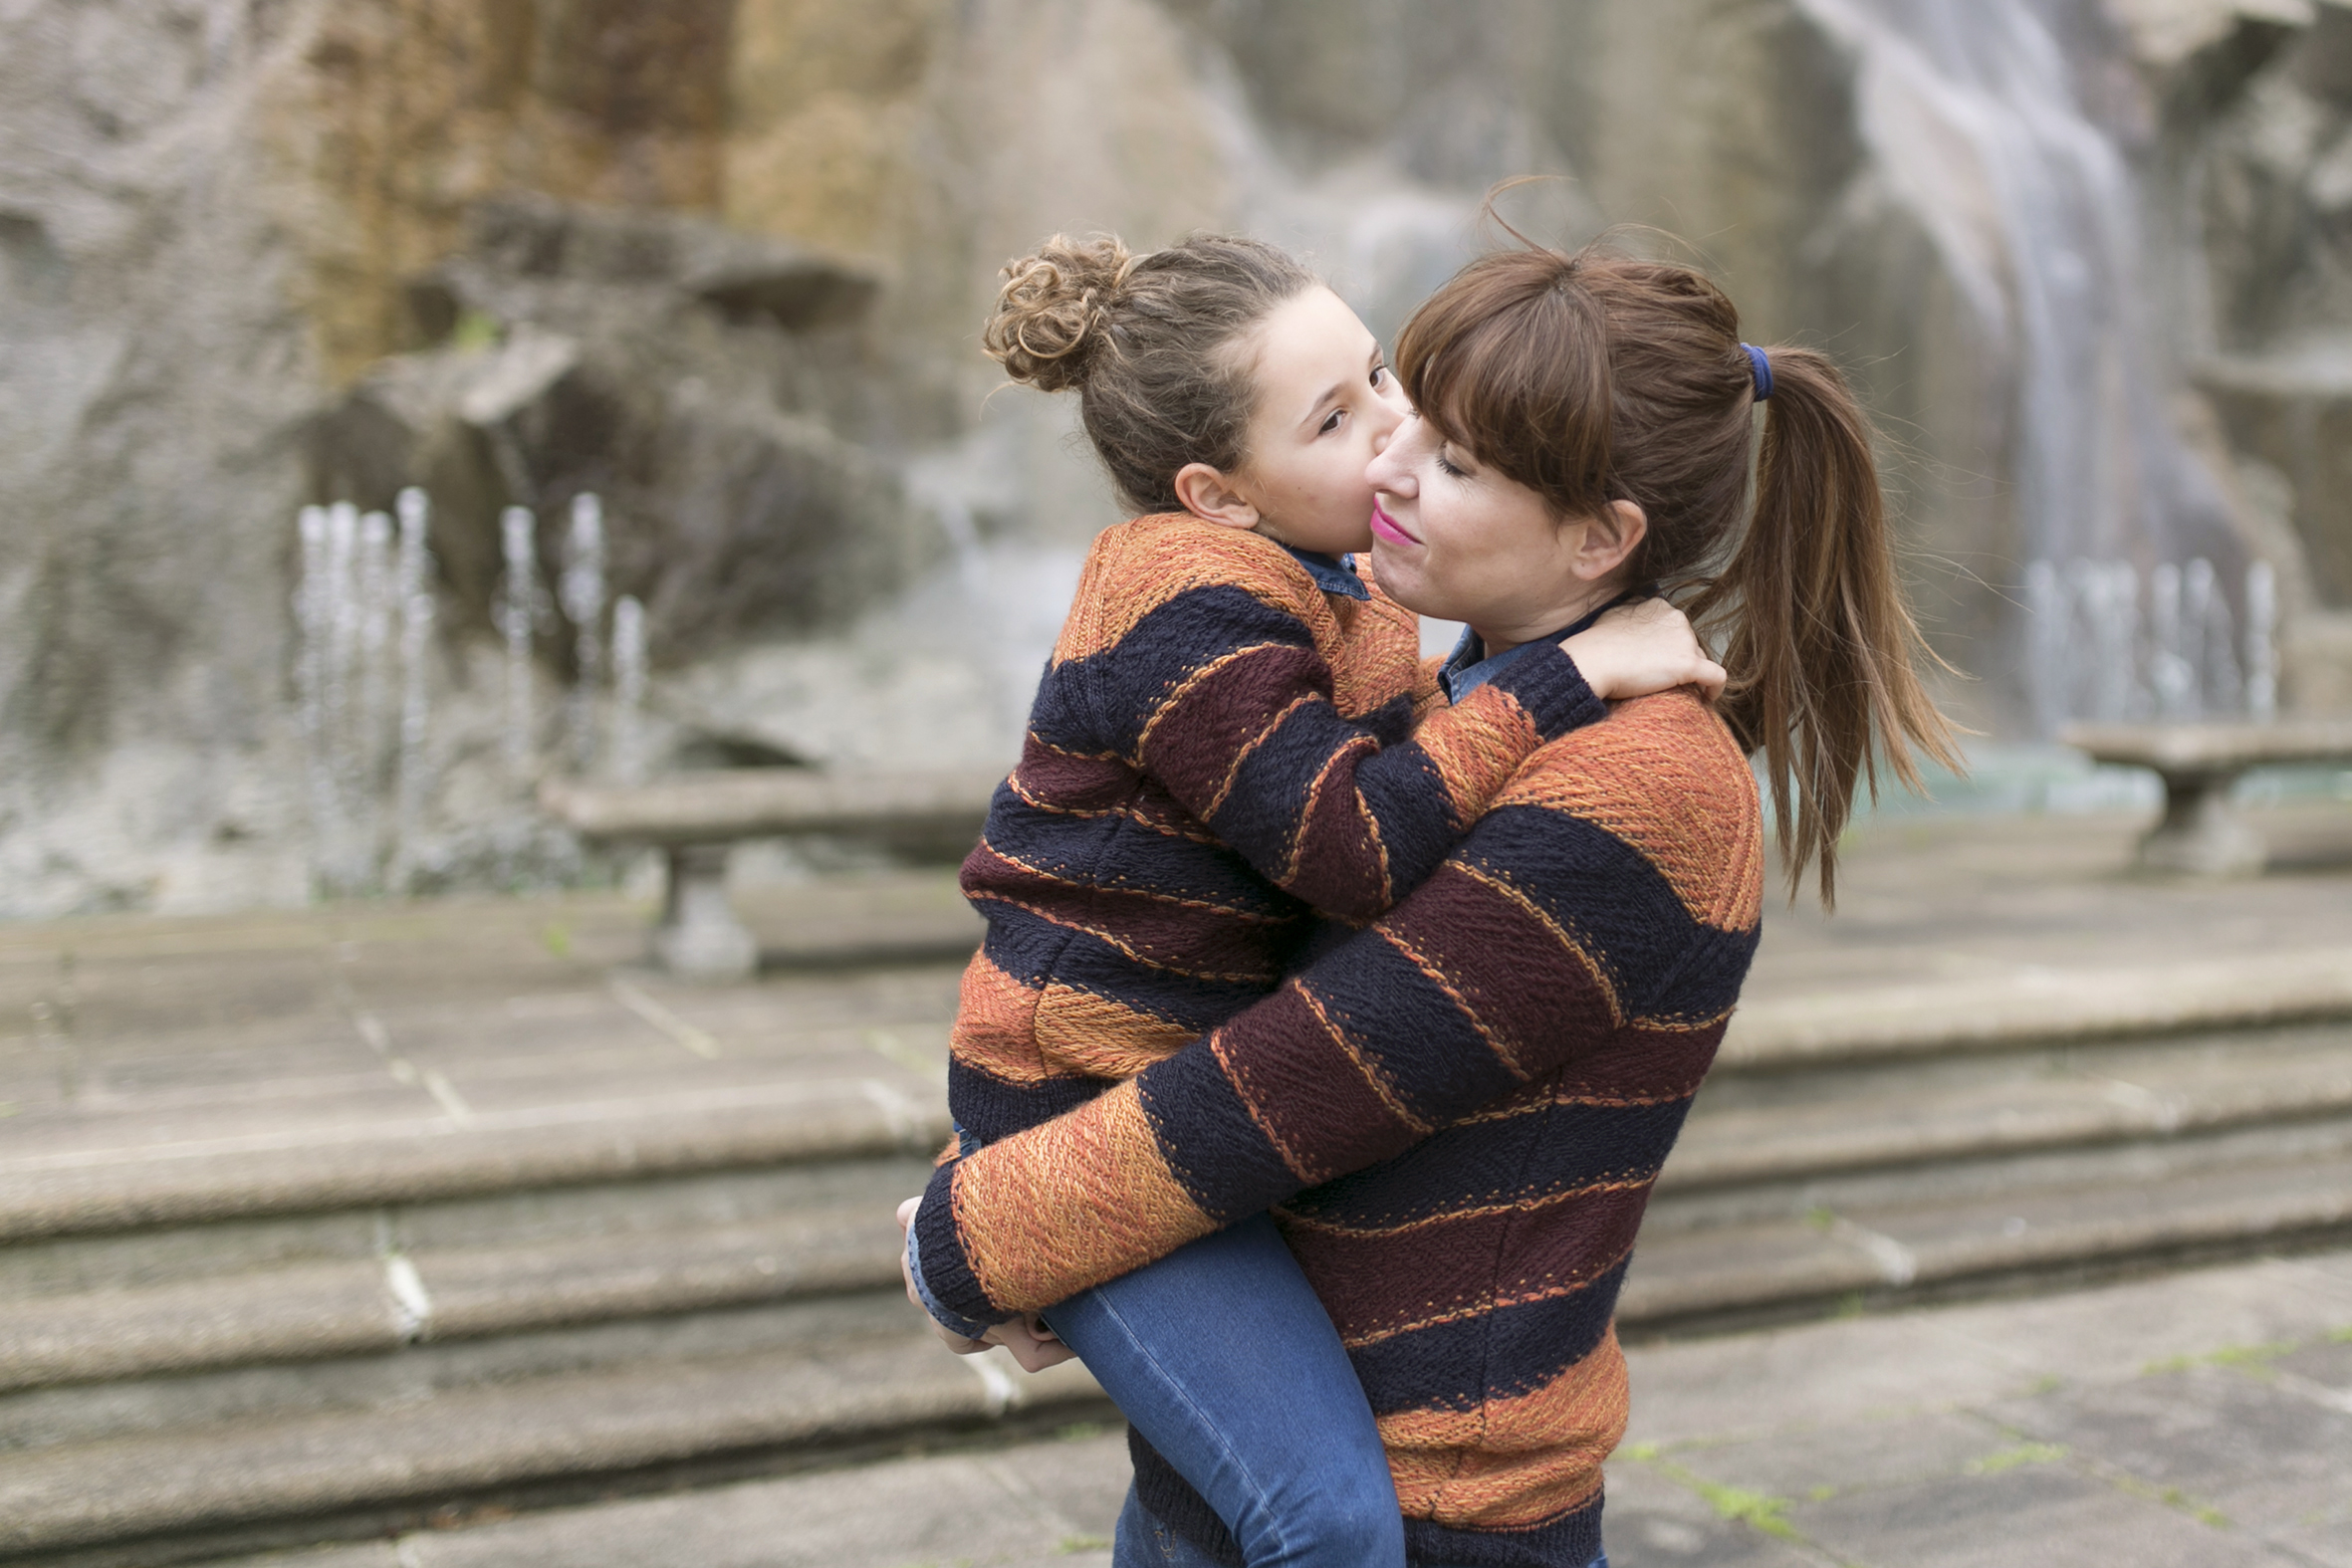 zara kids-mom and daughter-minime- streetstyle-descalzaporelparque-madre e hija-felicidad-coruña